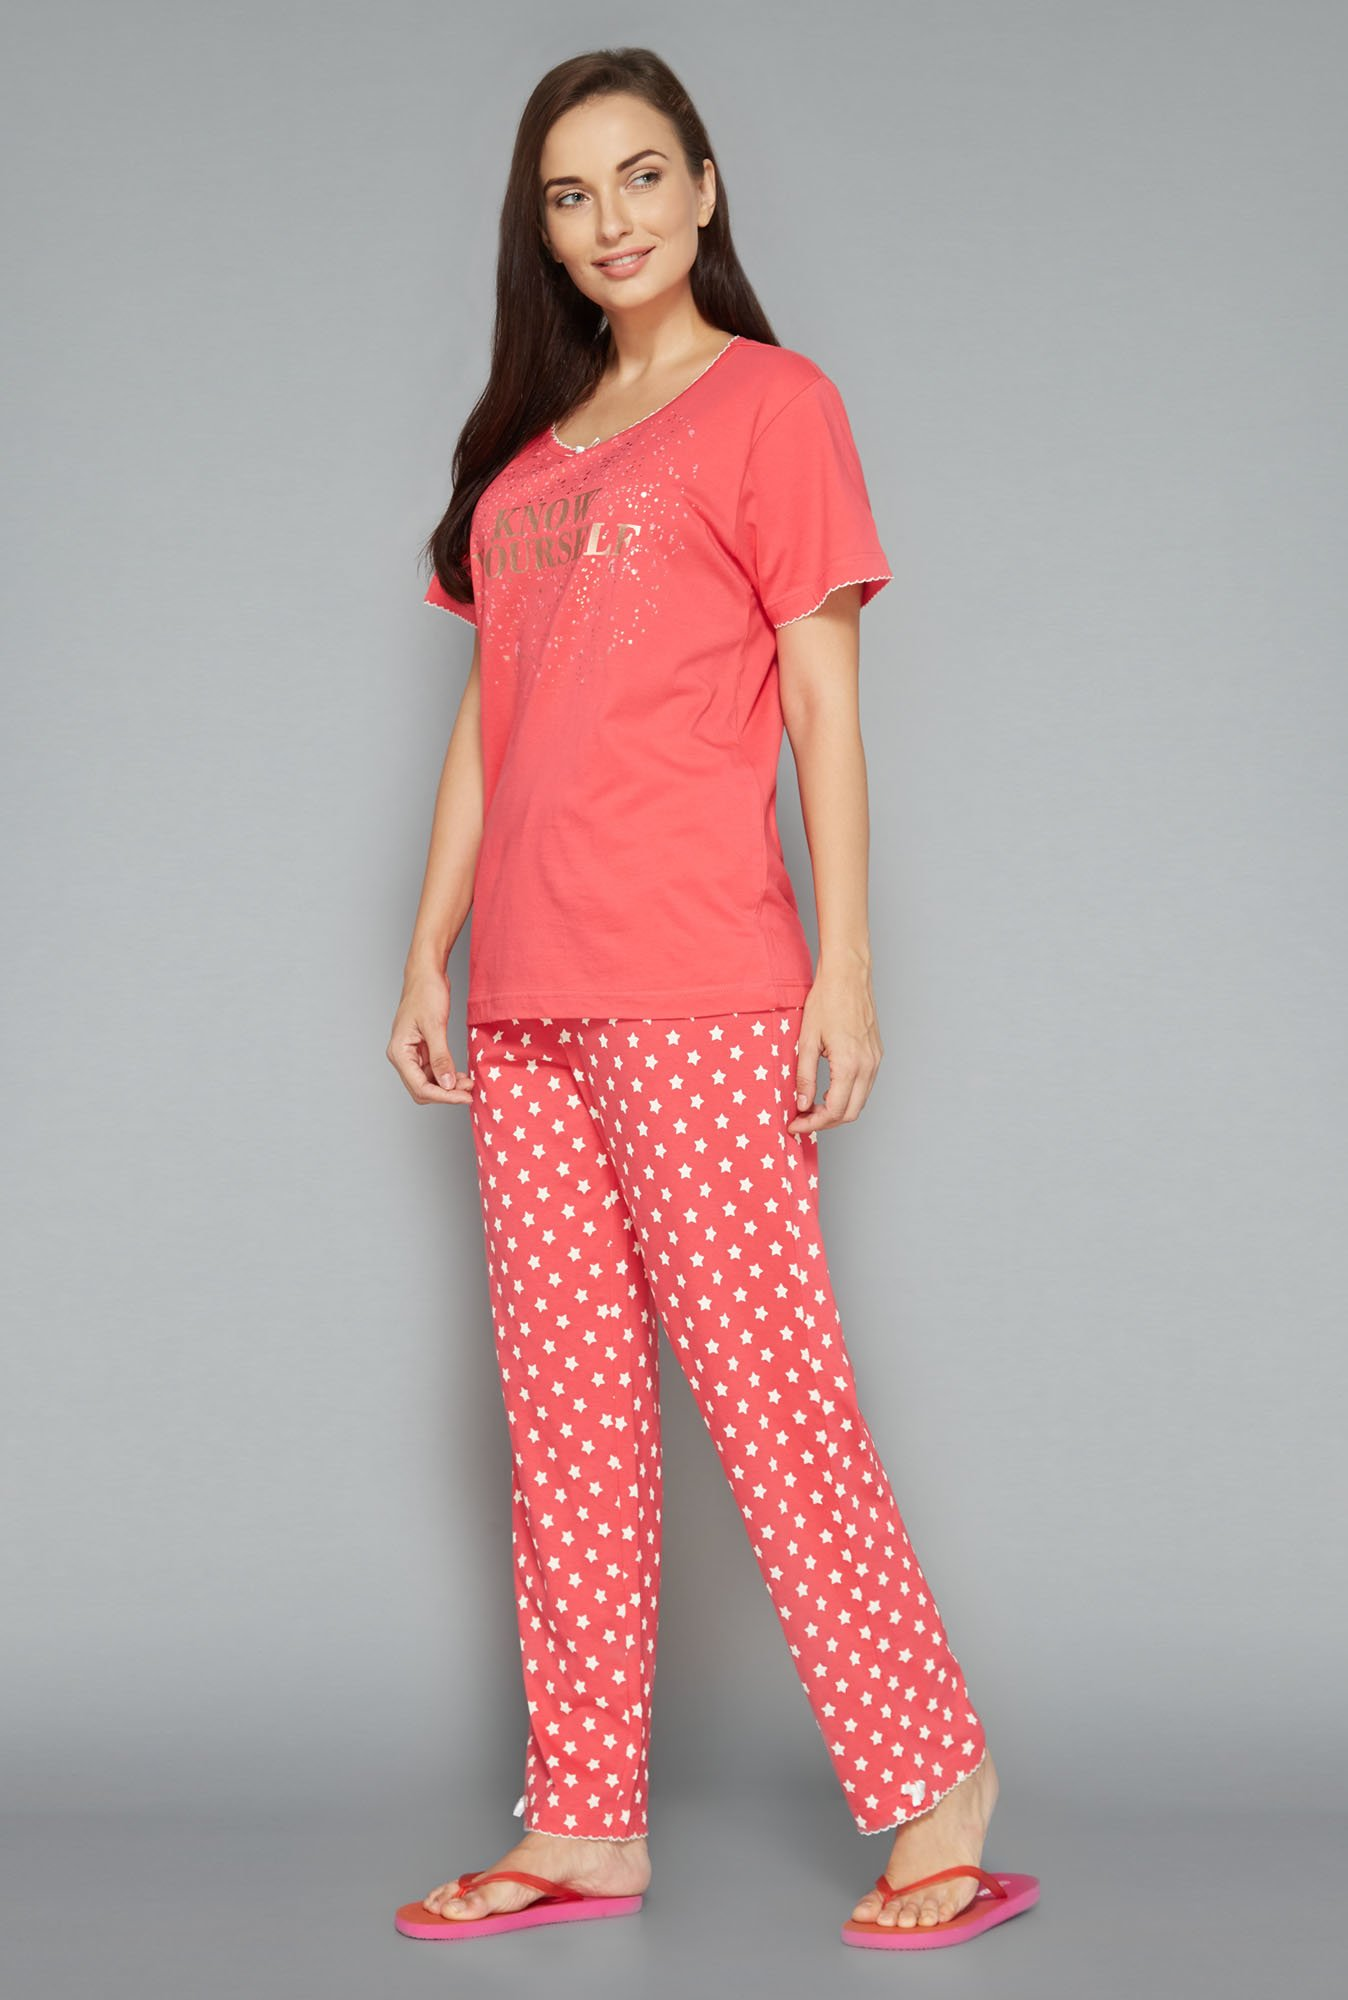 Intima by Westside Pink Printed Pyjama Set